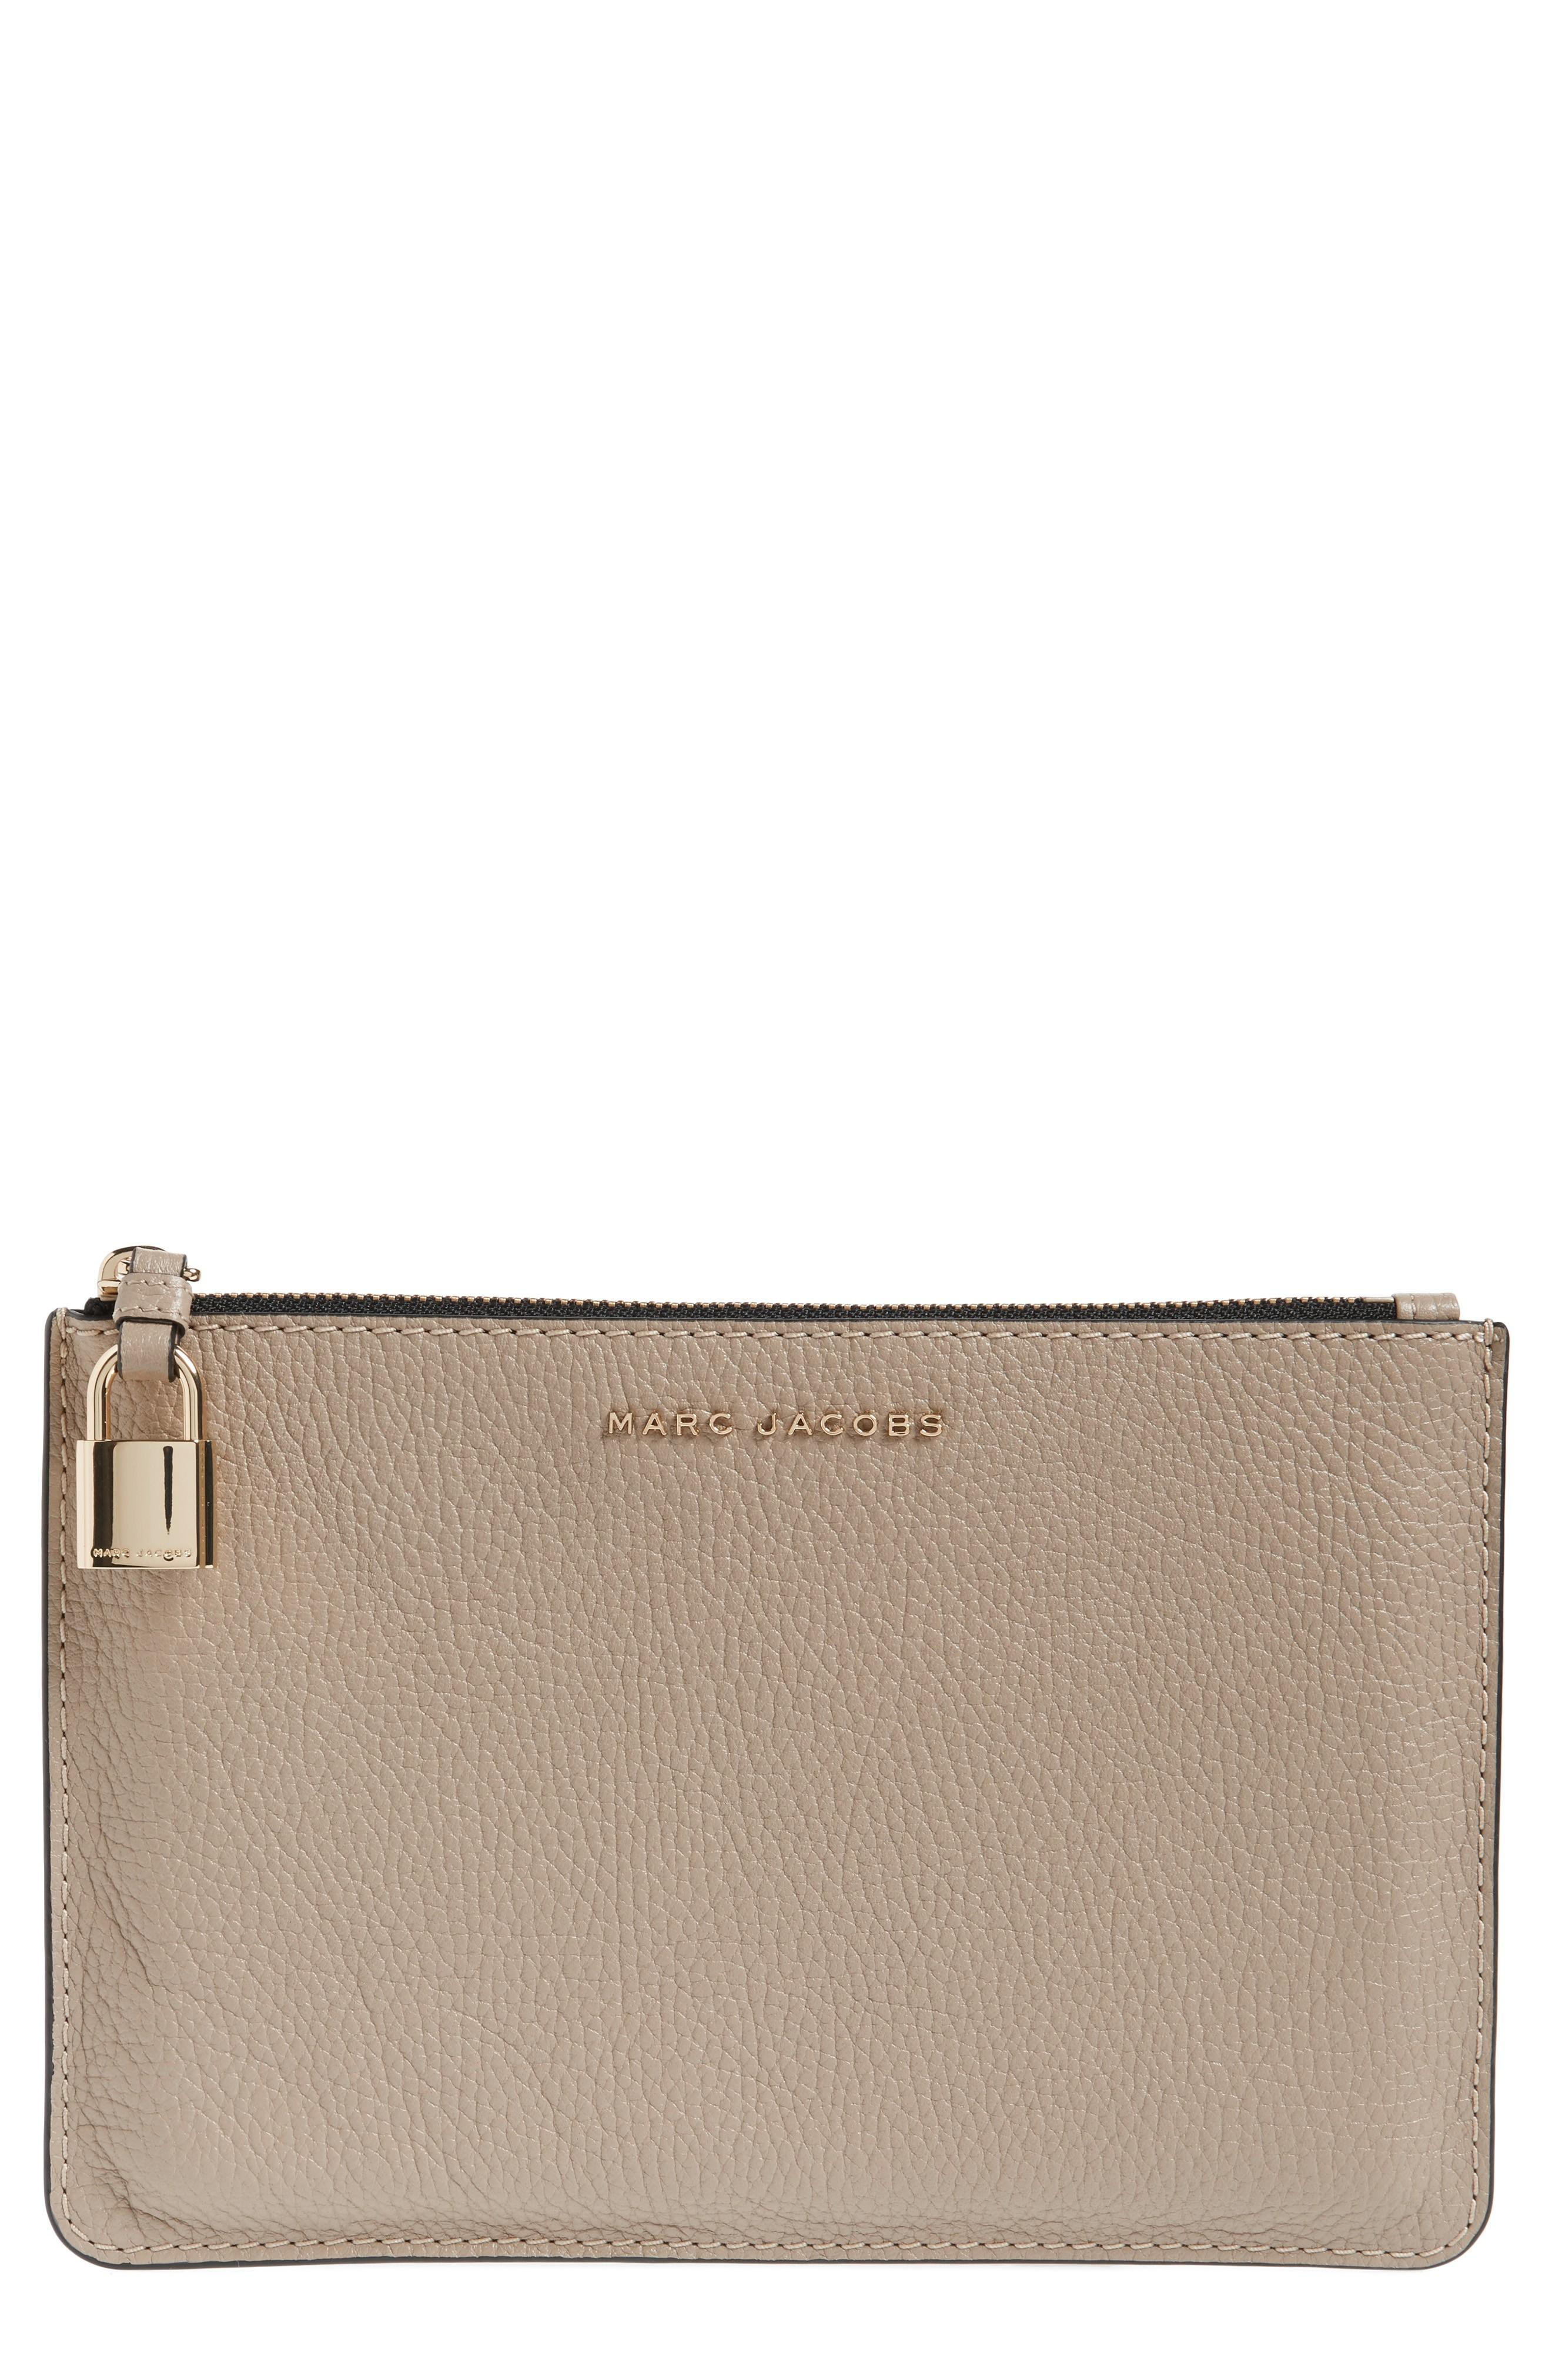 1caf1c0dc55e MARC JACOBS MEDIUM LEATHER POUCH - GREY